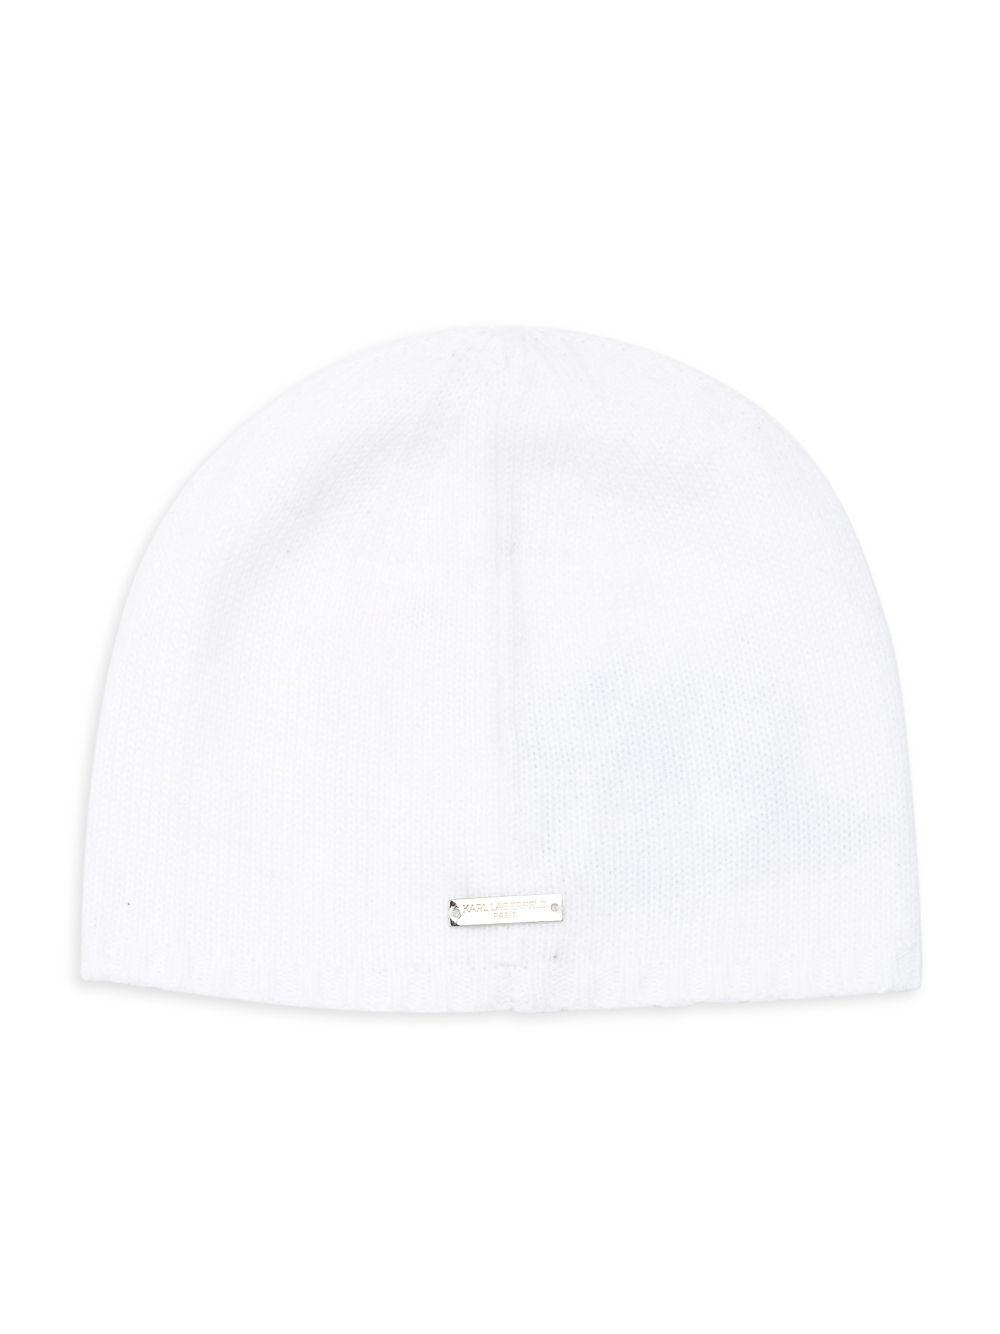 Karl Lagerfeld - White Embroidered Camellia Beanie - Lyst. View fullscreen efcaf8d2f2e8